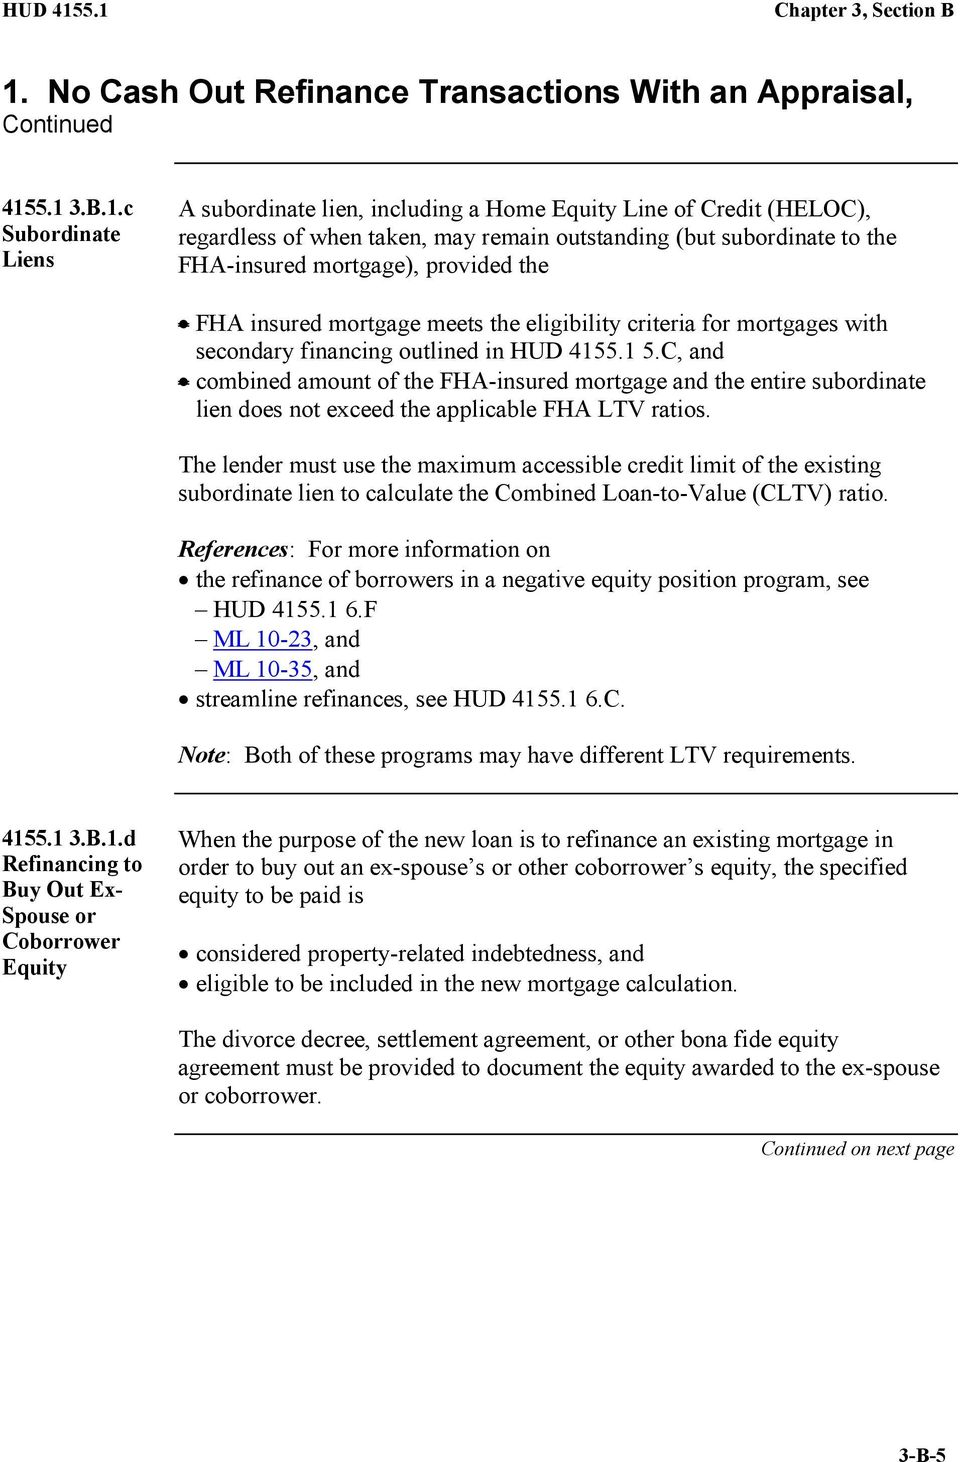 C, and combined amount of the FHA-insured mortgage and the entire subordinate lien does not exceed the applicable FHA LTV ratios.